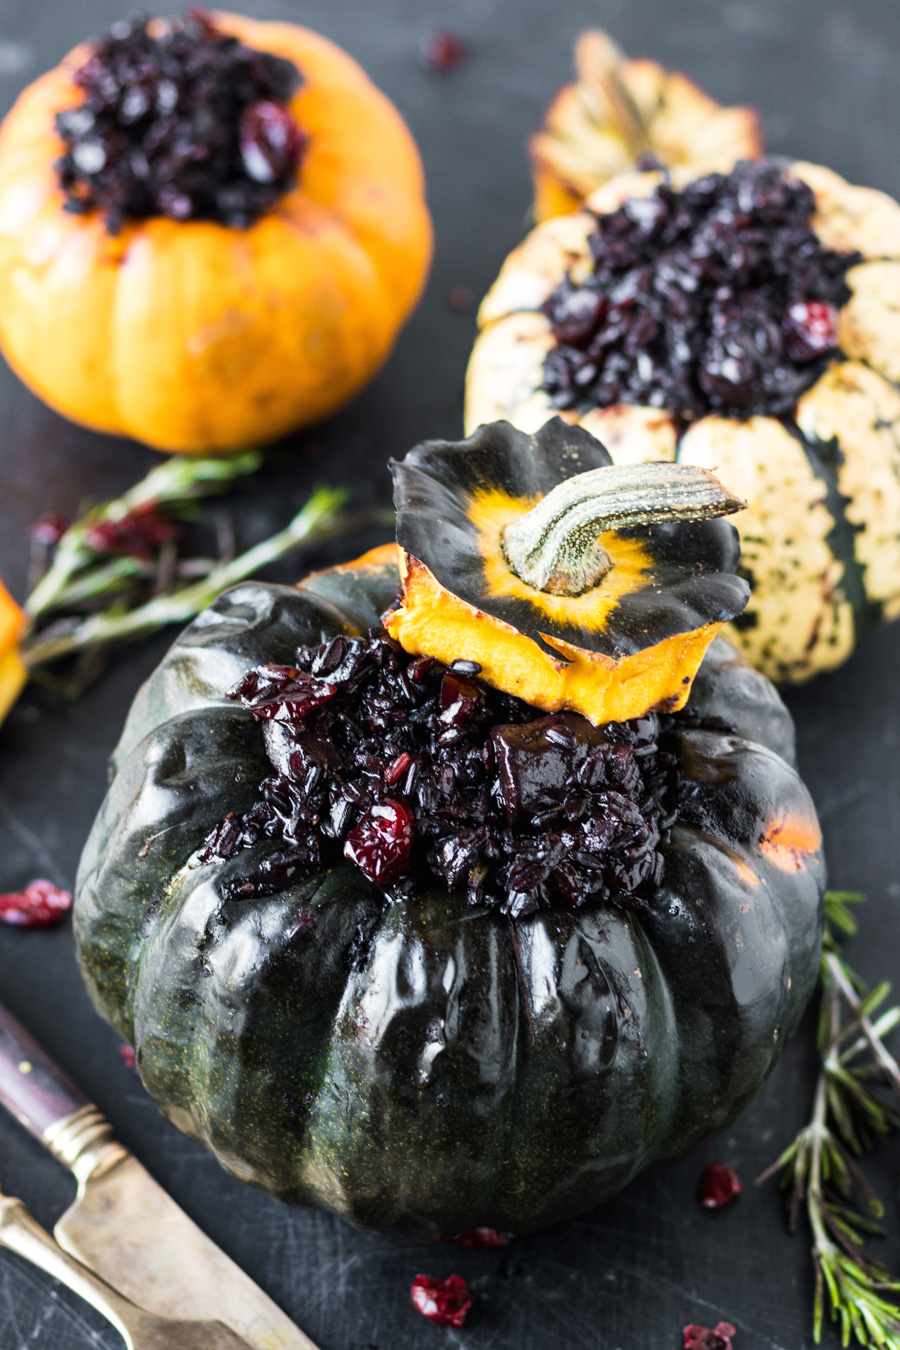 Vegan Festive Black Risotto Stuffed Pumpkins (With Red Wine, Mushrooms, Rosemary & Cranberries)